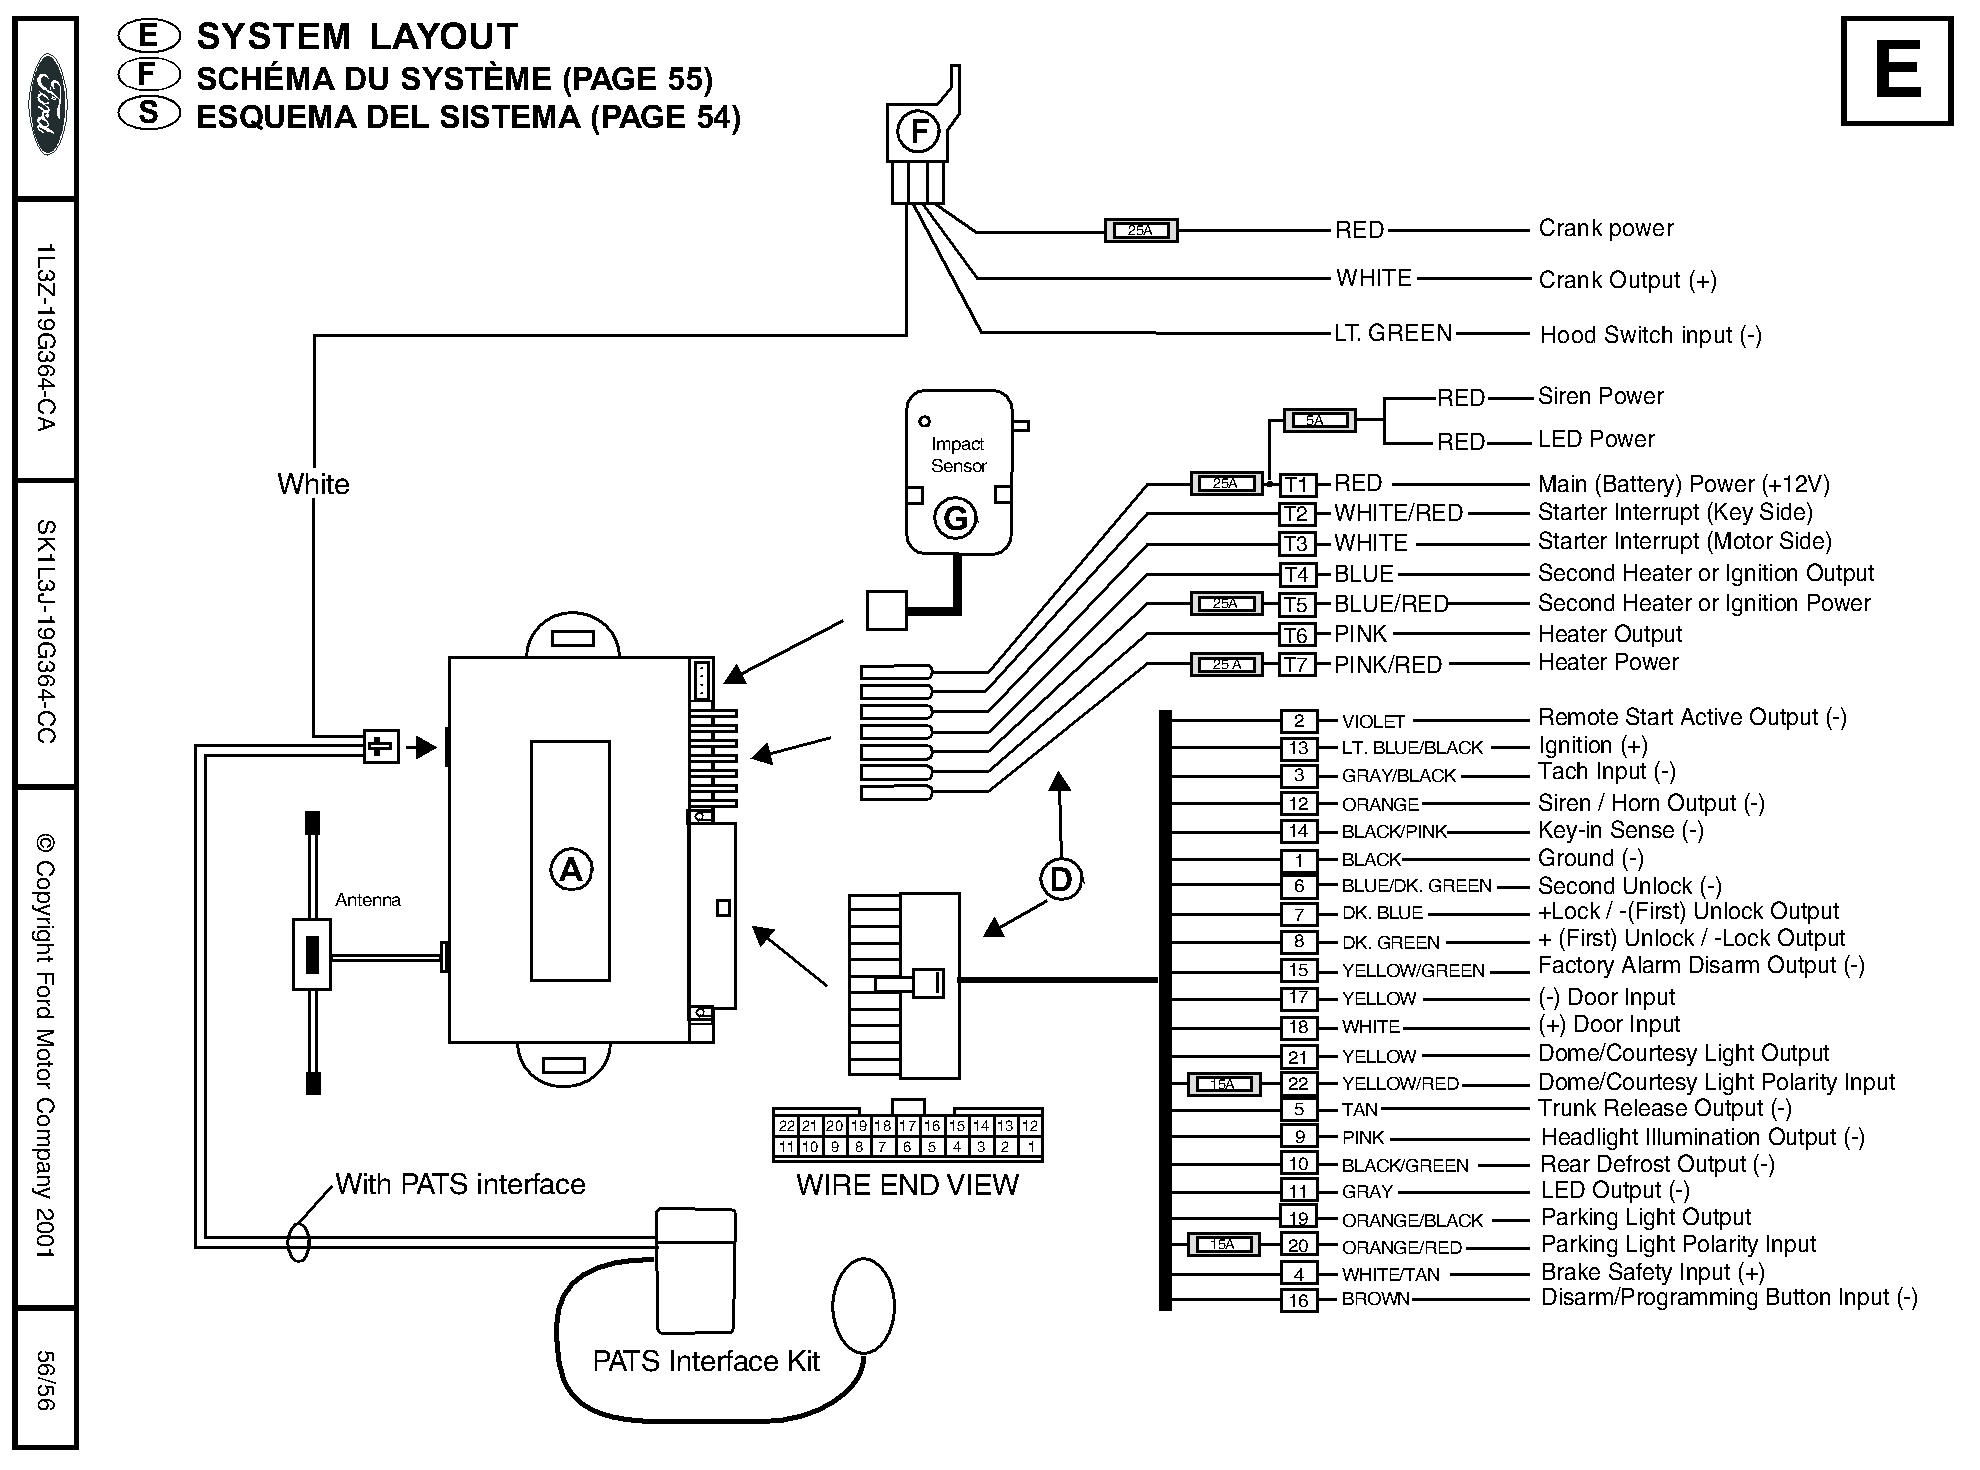 2001 f150 fuel pump wiring harness diagram with Index on 1d7em Trying Locate Egr Pressure Sensor 2001 V6 Mustang moreover Charging System Wiring Diagram For Ford F 250 as well Discussion T30291 ds700980 together with 58yen 2004 F350 5 4l Engine 2wd Auto Transmision Blowing Fuse in addition 4qq65 Ford Explorer 4x4 Fuse Power Windows.